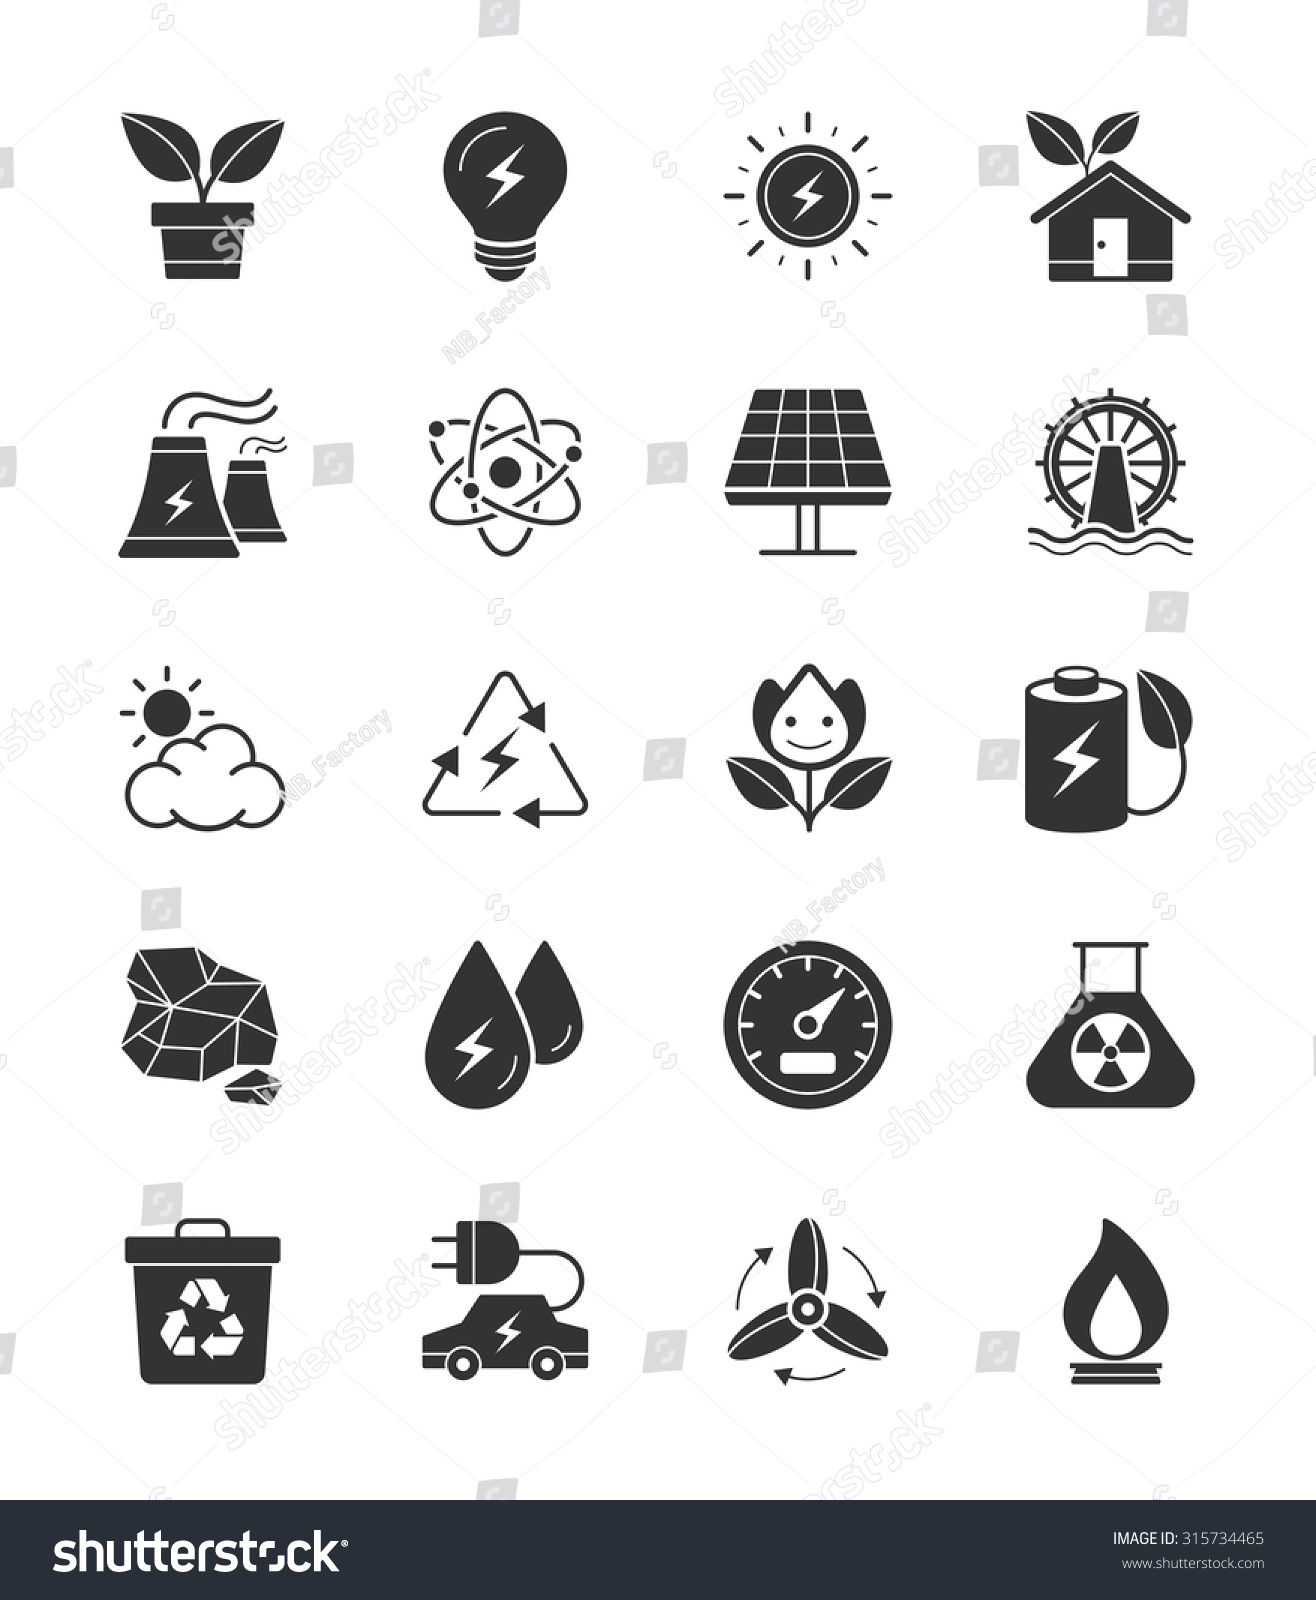 Eco energy power icons on white stock vector 315734465 shutterstock eco energy and power icons on white background vector illustration biocorpaavc Gallery